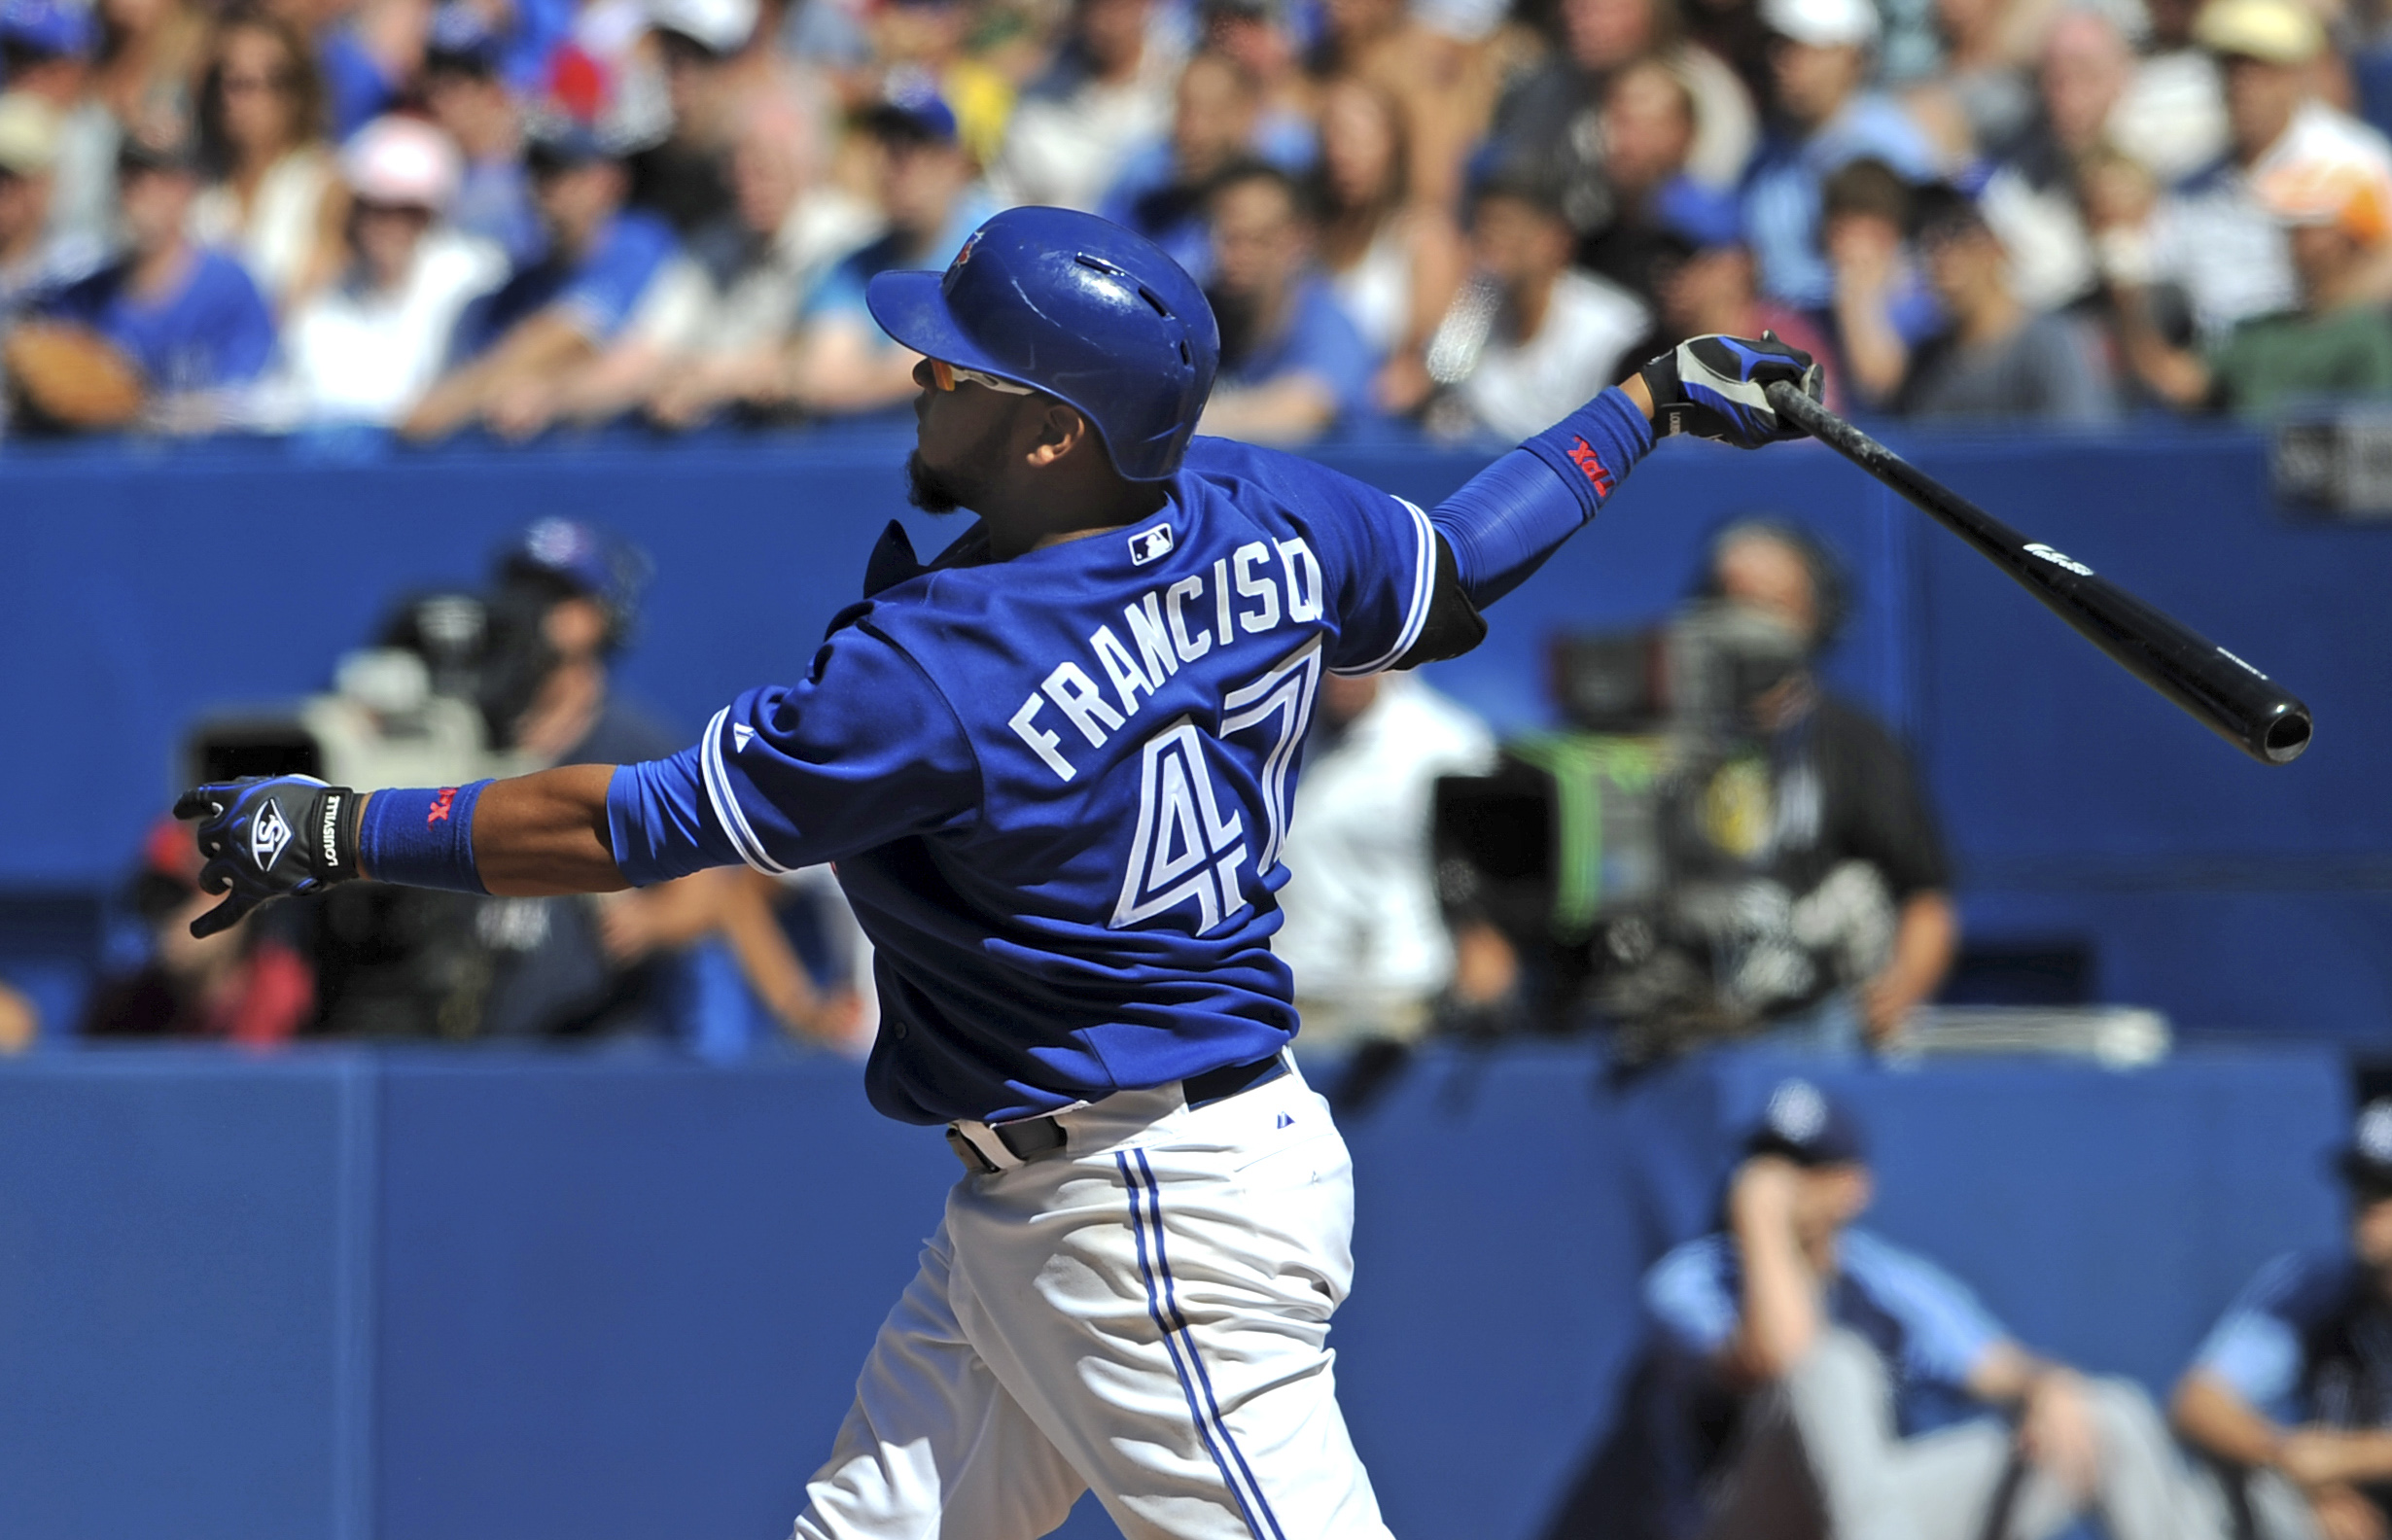 8045541-mlb-tampa-bay-rays-at-toronto-blue-jays